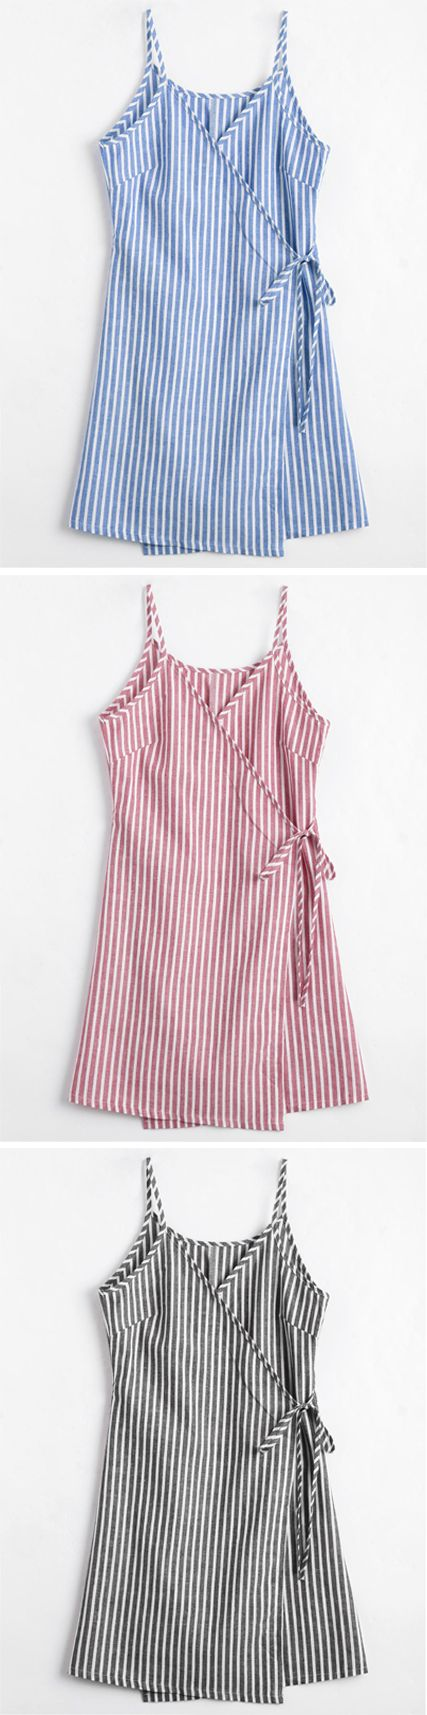 Next stop, striped dress. Zaful,Maxi dresses,Bohemian dresses,Long sleeve dresses,Casual dresses,Off the shoulder dresses,Prom dresses,Cocktail dresses,Wedding dresses,Midi dresses,Mini dresses,to find different dress(dresses) ideas @zaful Extra 10% OFF Code:ZF2017